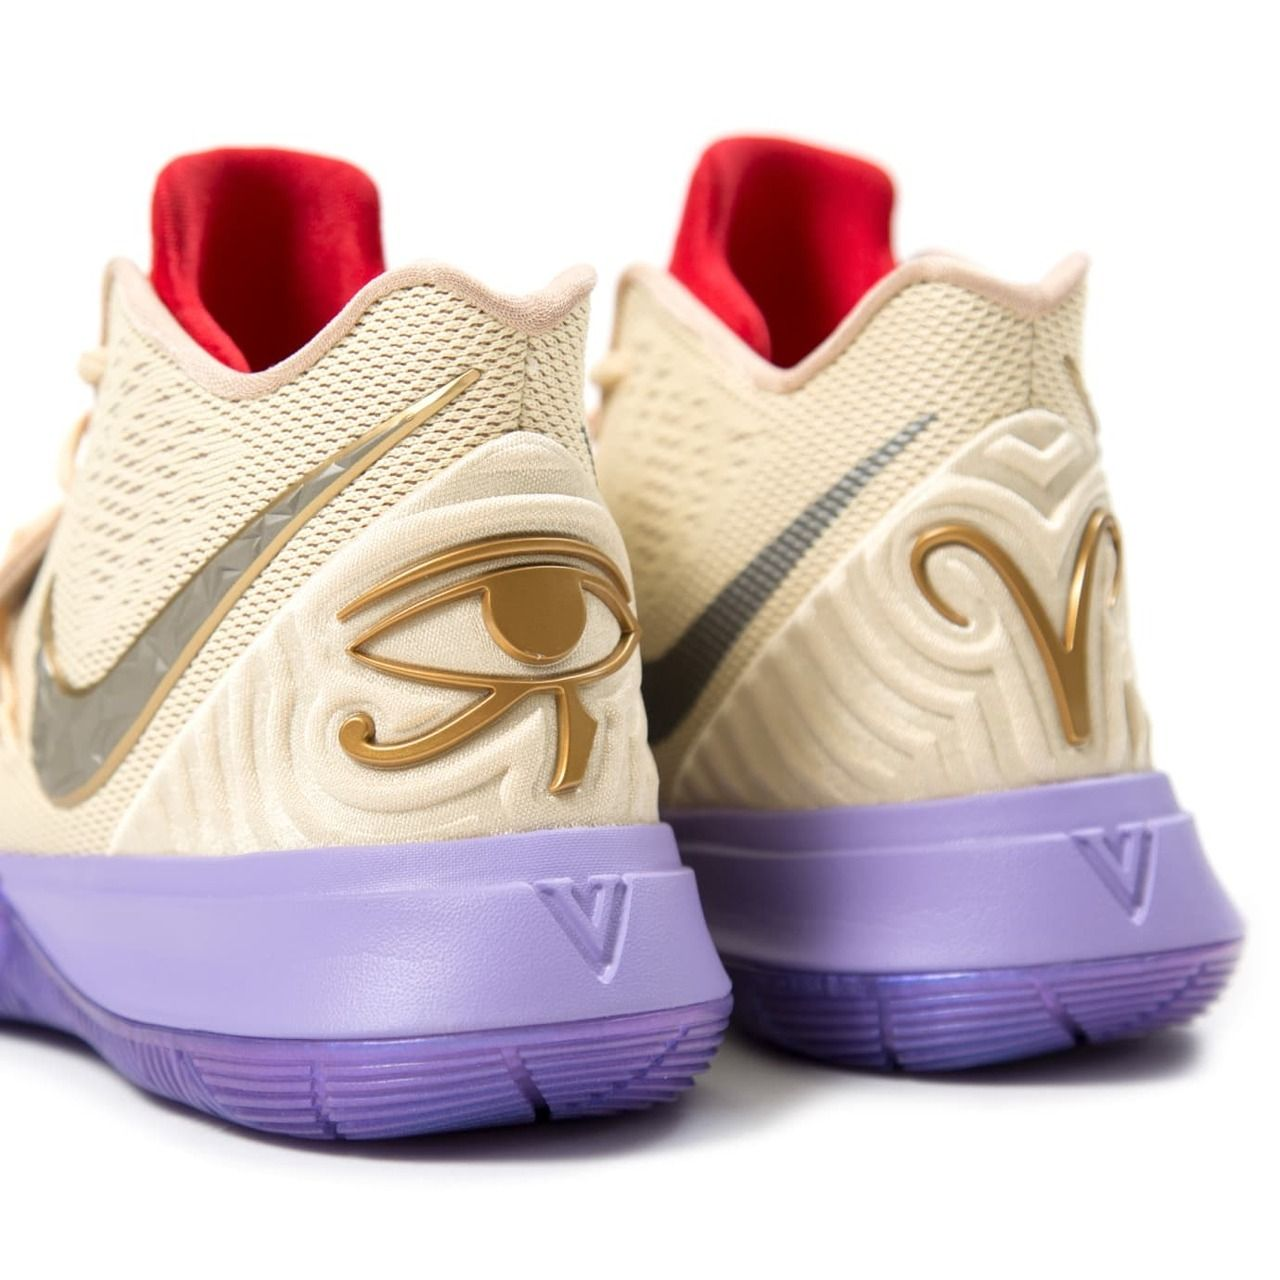 30bef100879e Nike Kyrie 5 X Concepts